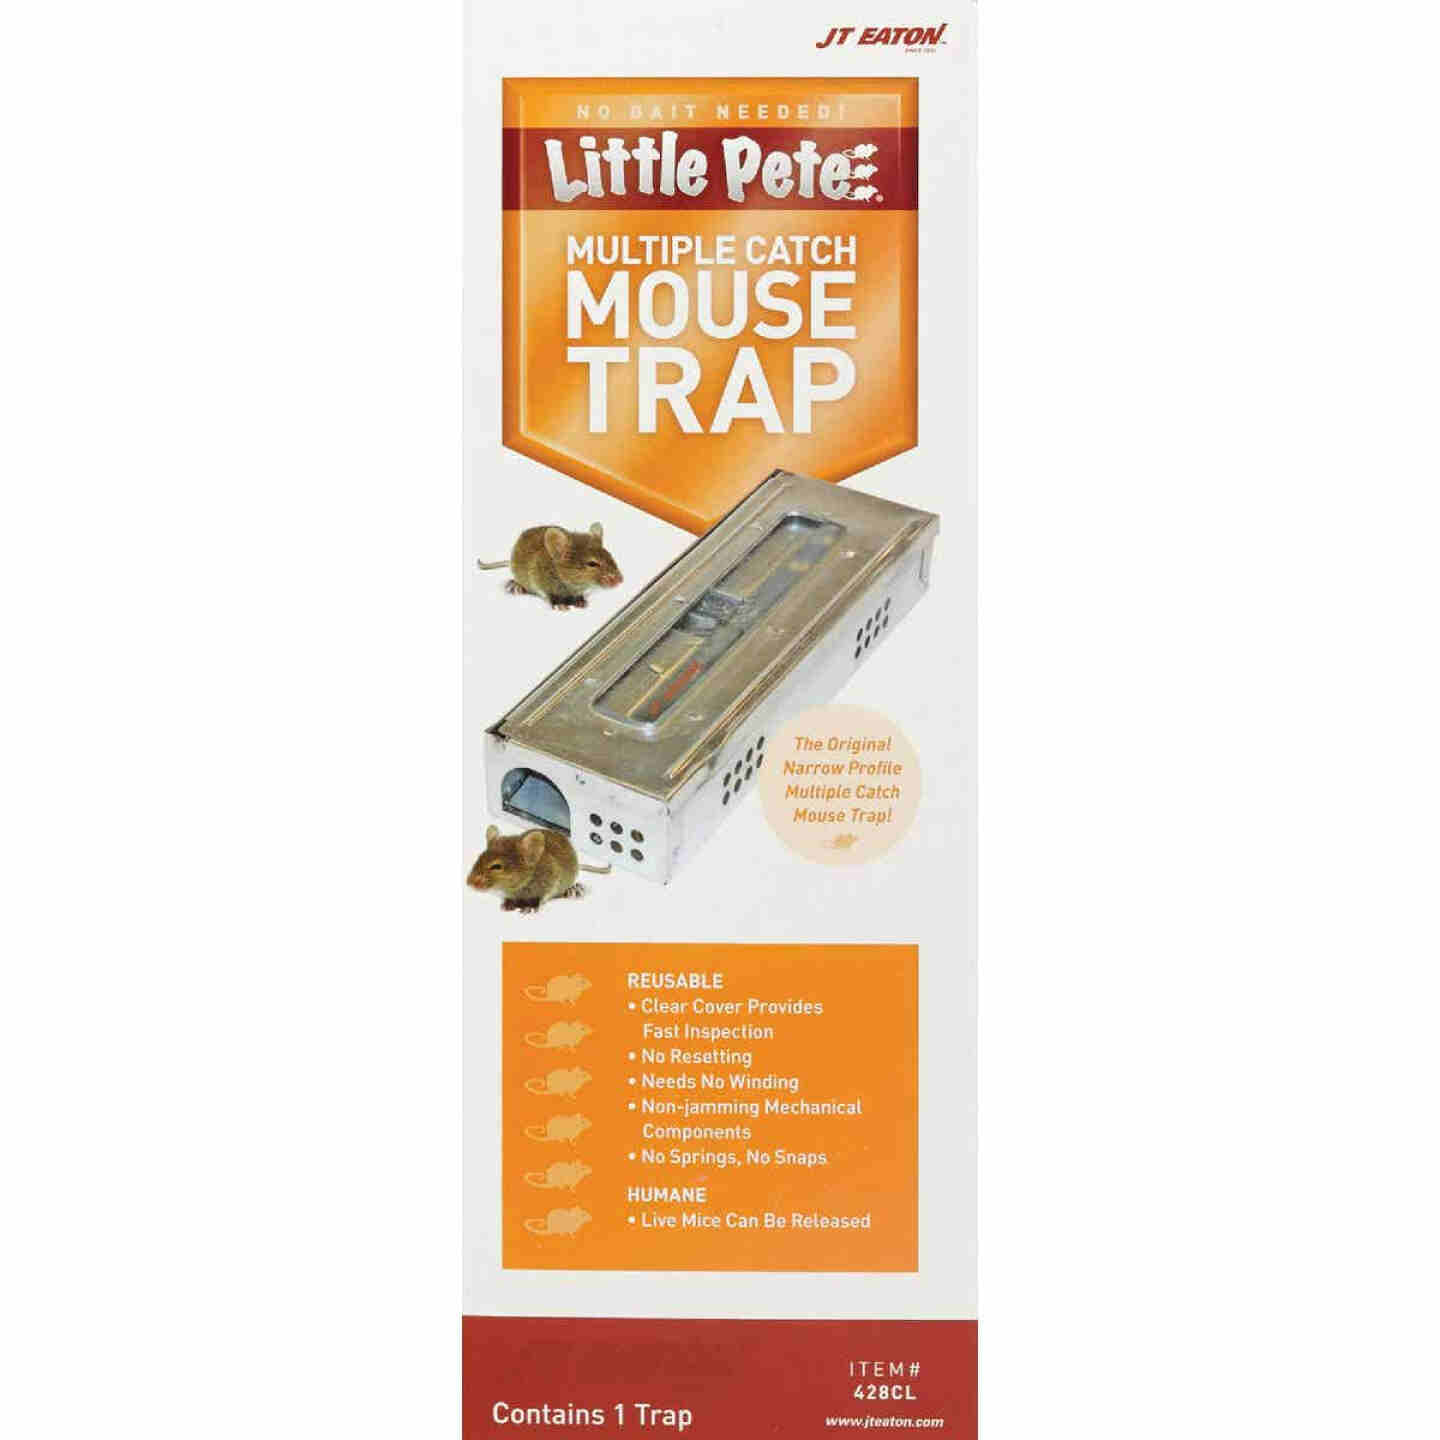 JT Eaton Little Pete Mechanical Mouse Trap with Clear Inspection Window (1-Pack) Image 2